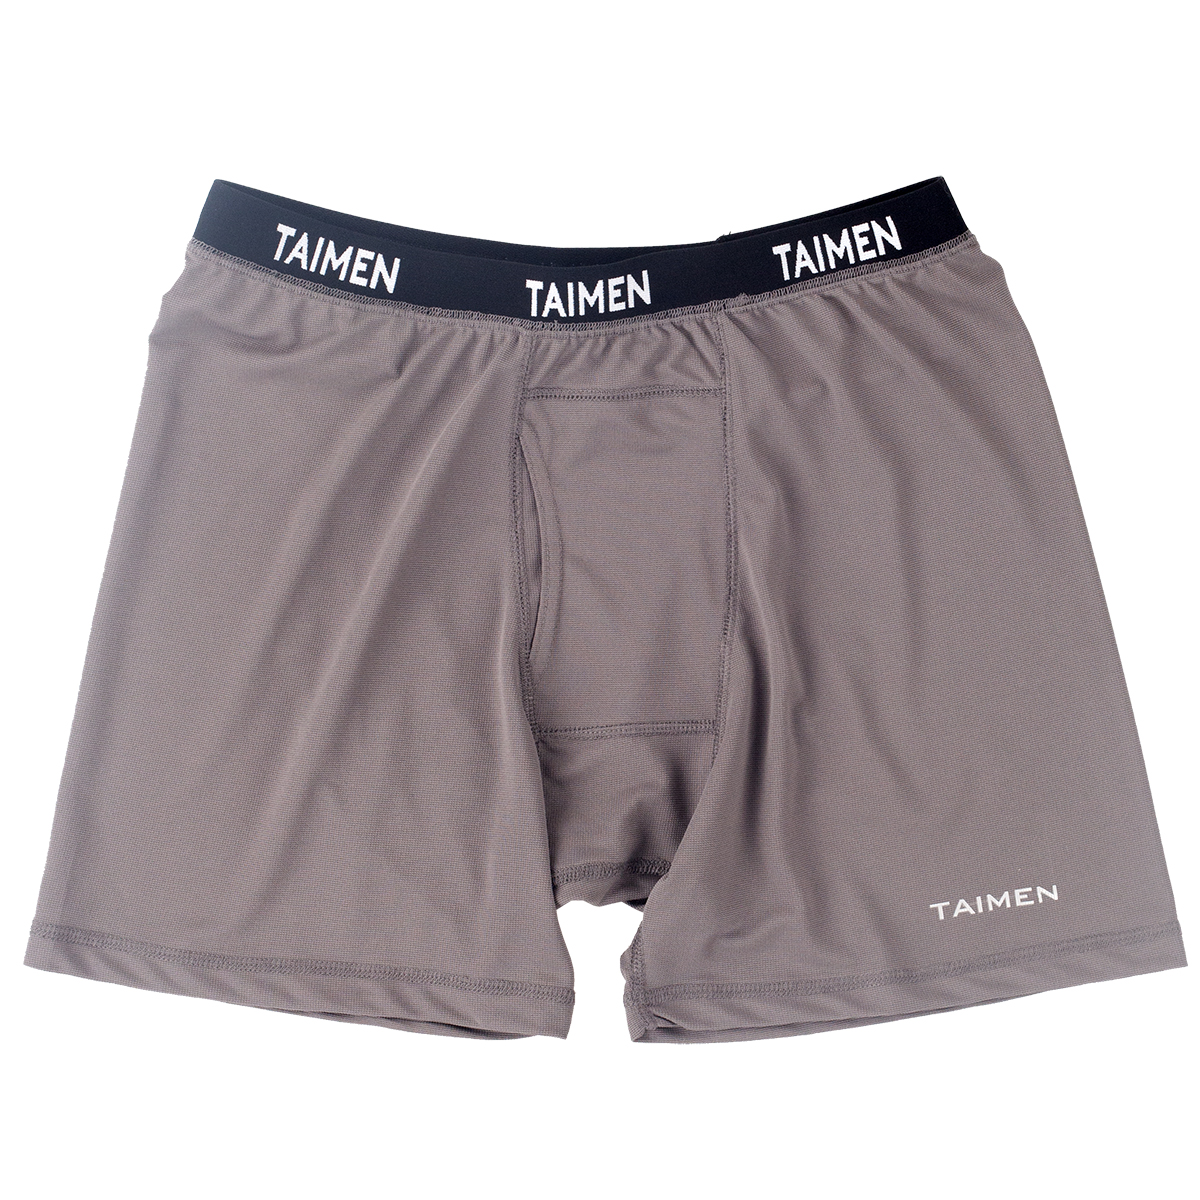 Taimen Polartec Power Dry Boxer - Dark Gull Gray